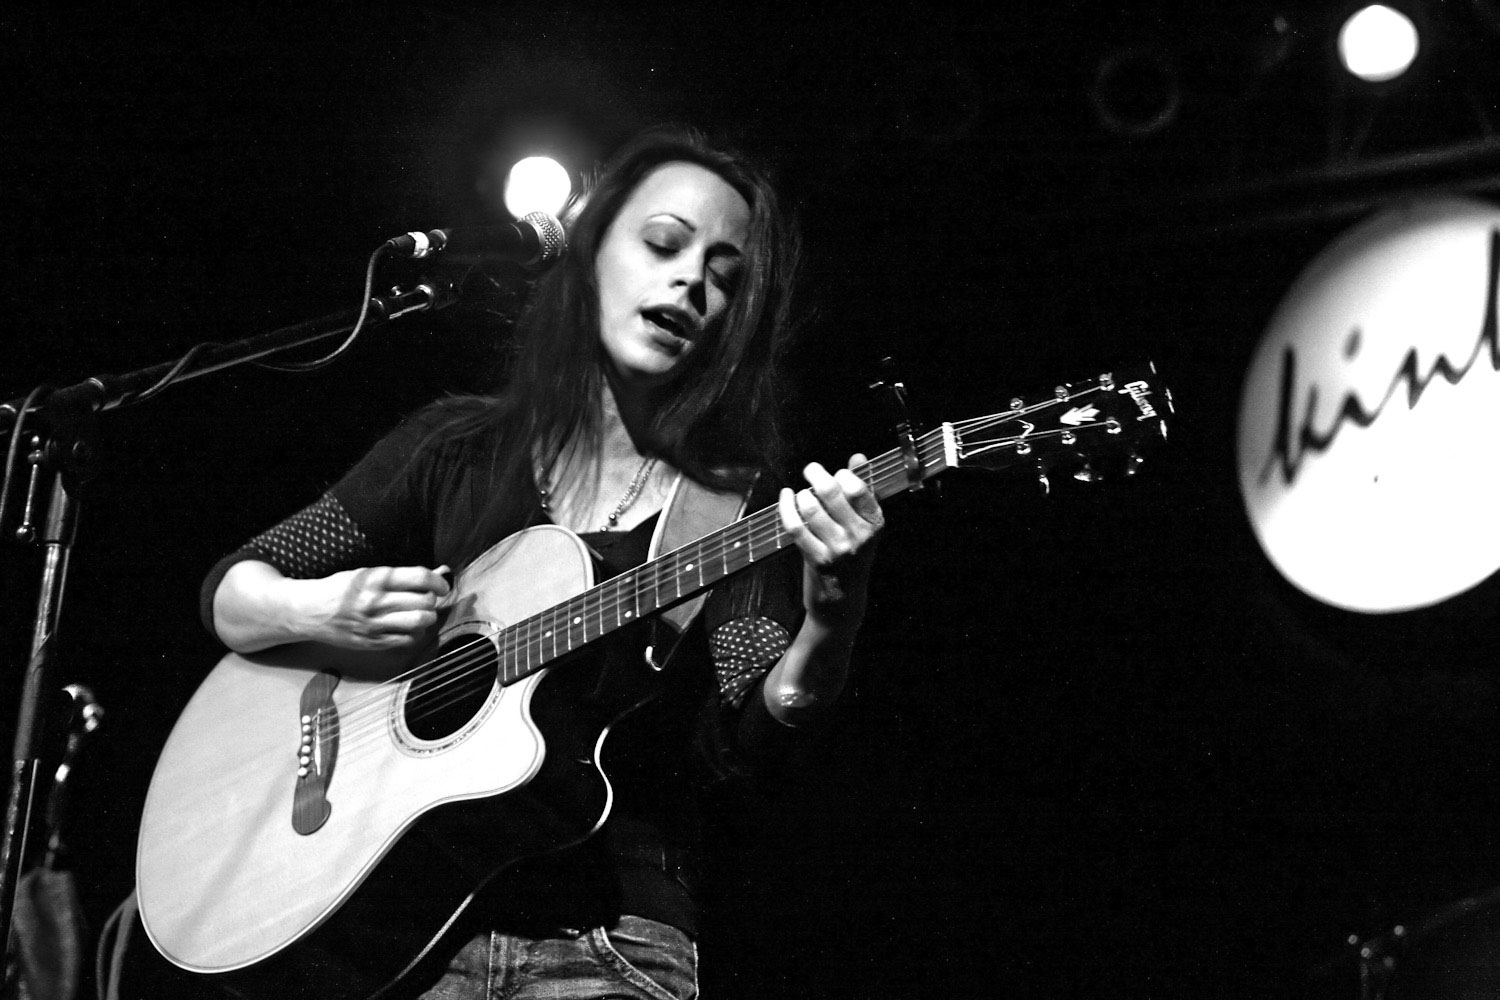 Mindy Smith plays guitar and sings in Portland Oregon